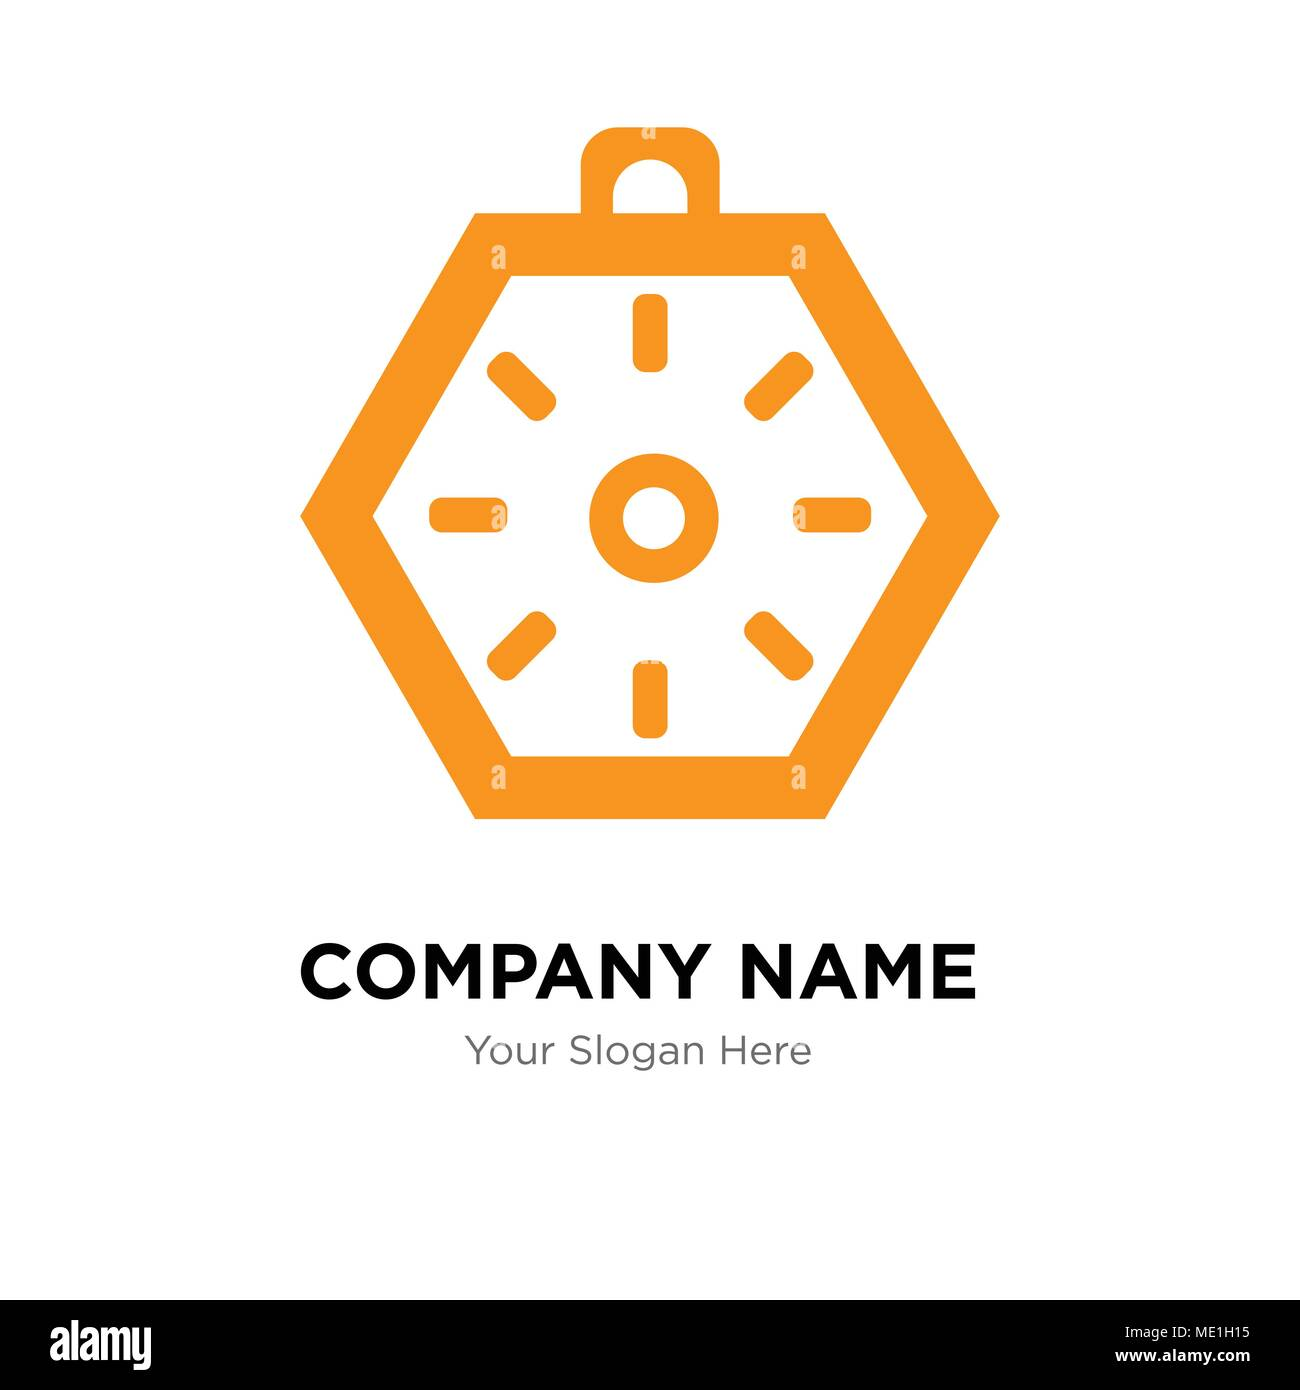 Localization orientation tool of compass with cardinal points company logo design template, Business corporate vector icon - Stock Image